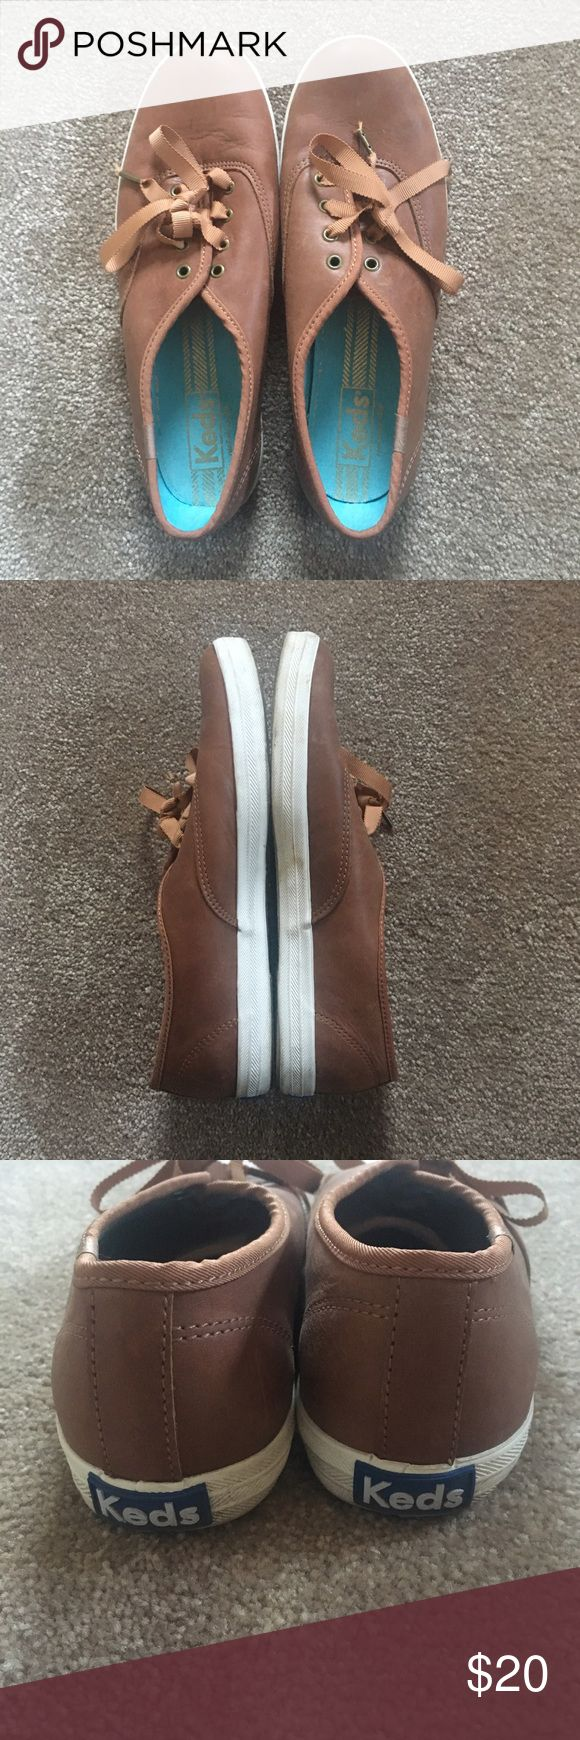 Brown Leather Keds 7M Worn only a few times. Super cute - part of the Taylor Swift Keds collection. Adorable brown ribbon laces. Keds Shoes Sneakers